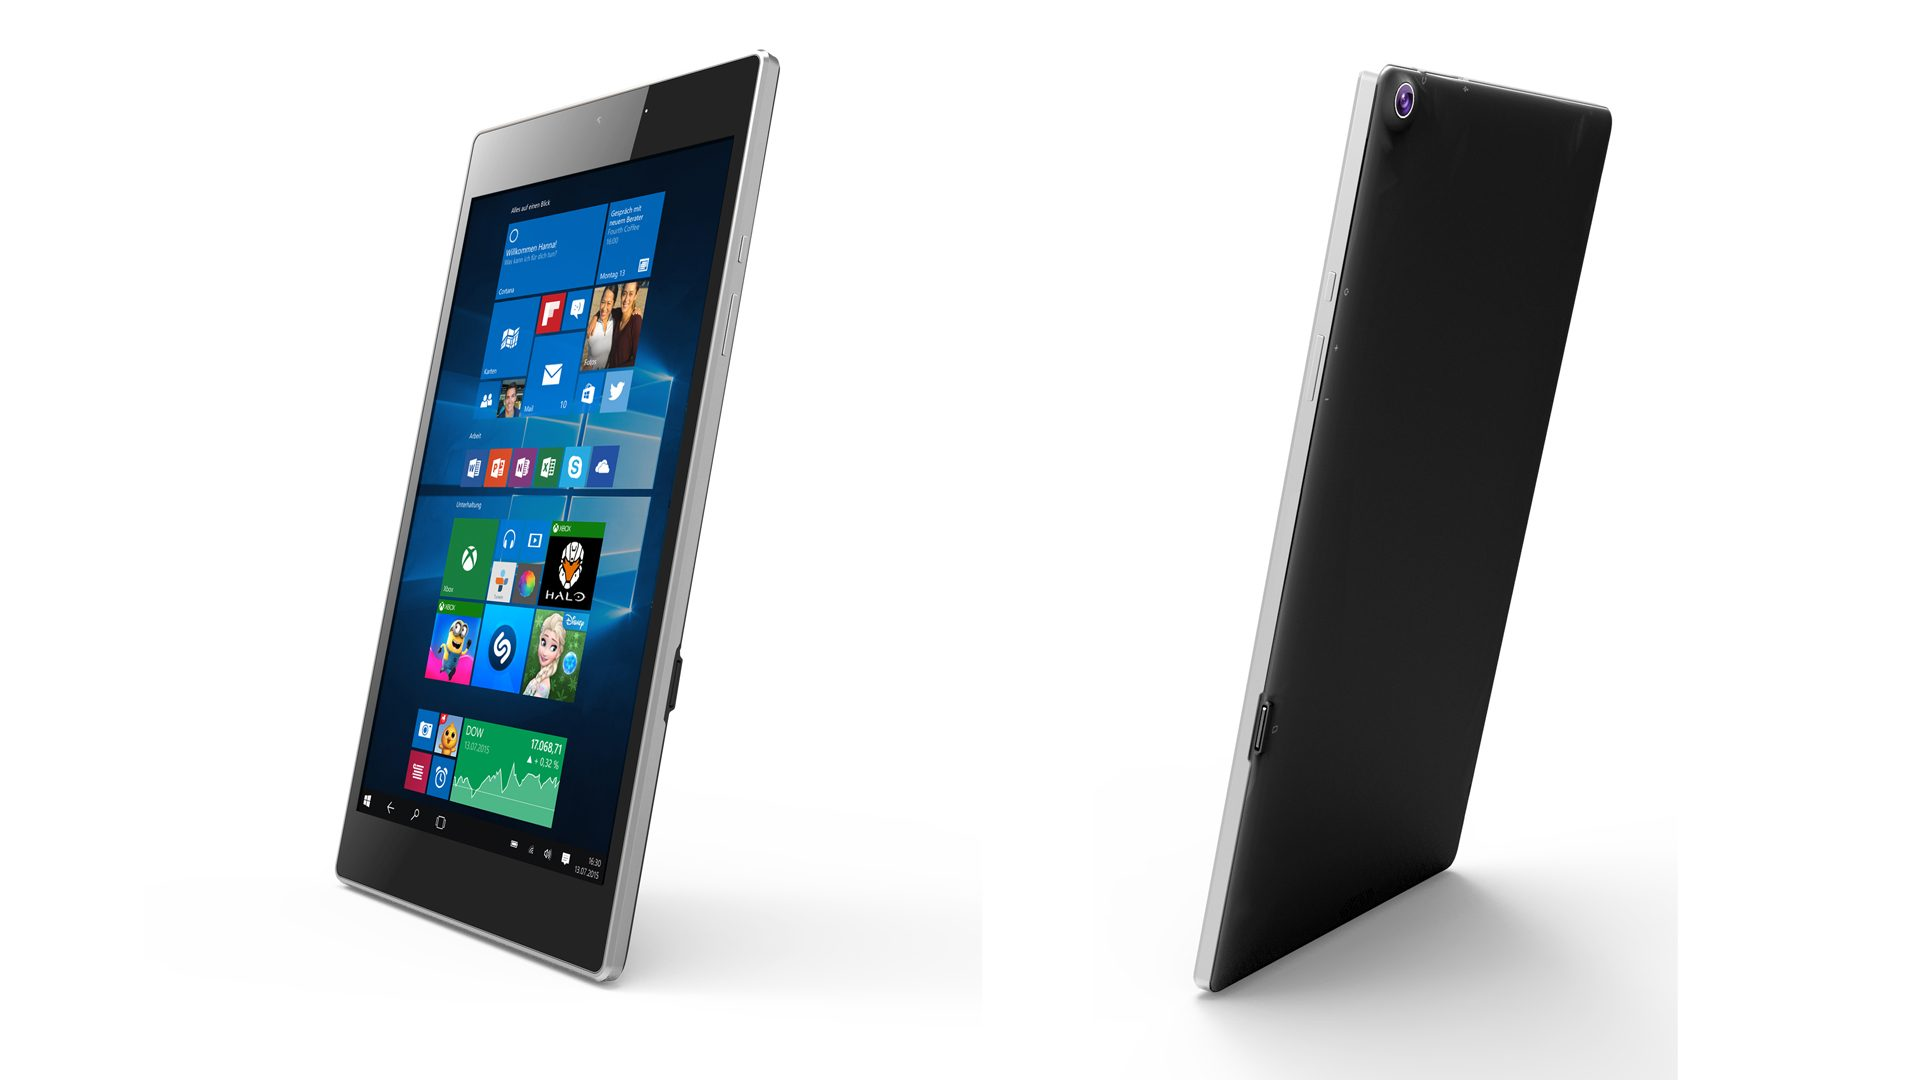 odys-cosmo-windows-x9-tablet-ansichten_2